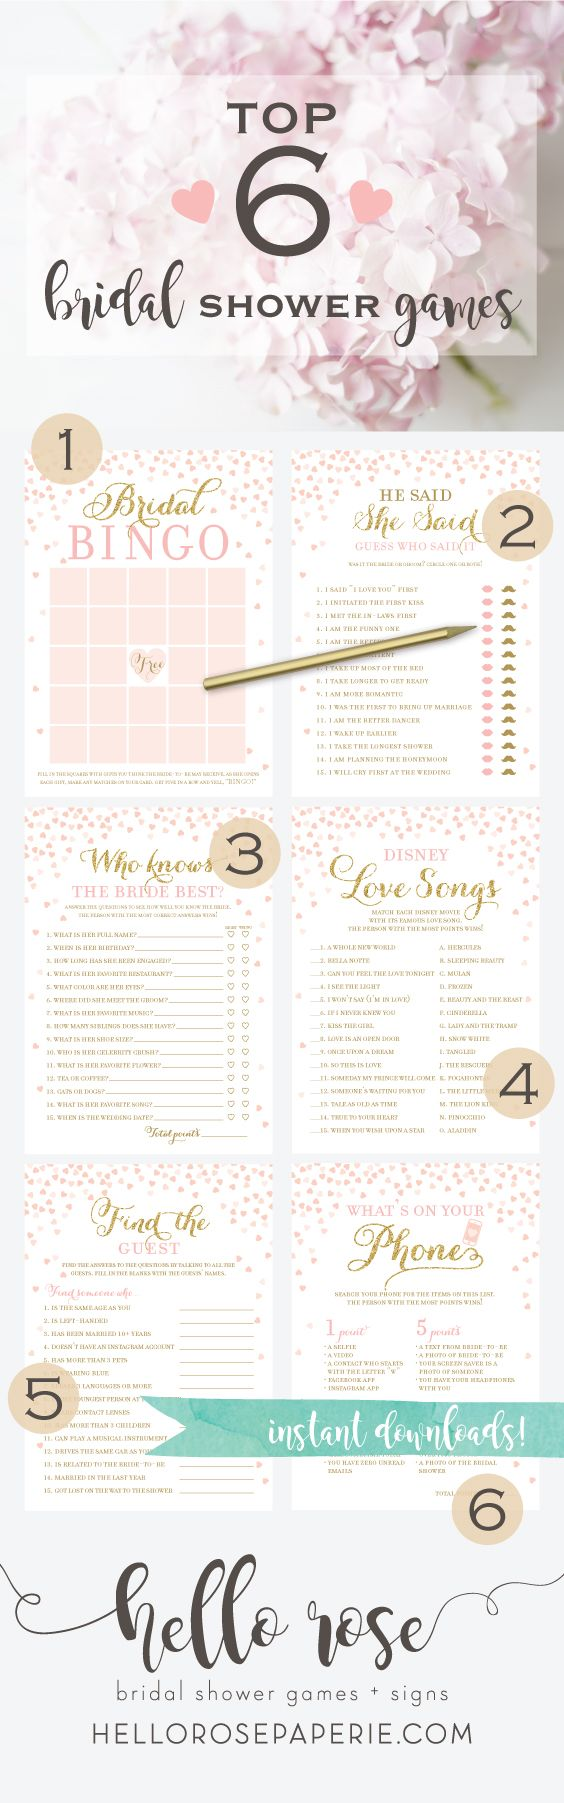 fun ideas for a kitchen tea. top 6 bridal shower games you need at your shower! they are printable, instant downloads. just print, cut and playeasy peasy! hello rose\u2026 fun ideas for a kitchen tea s